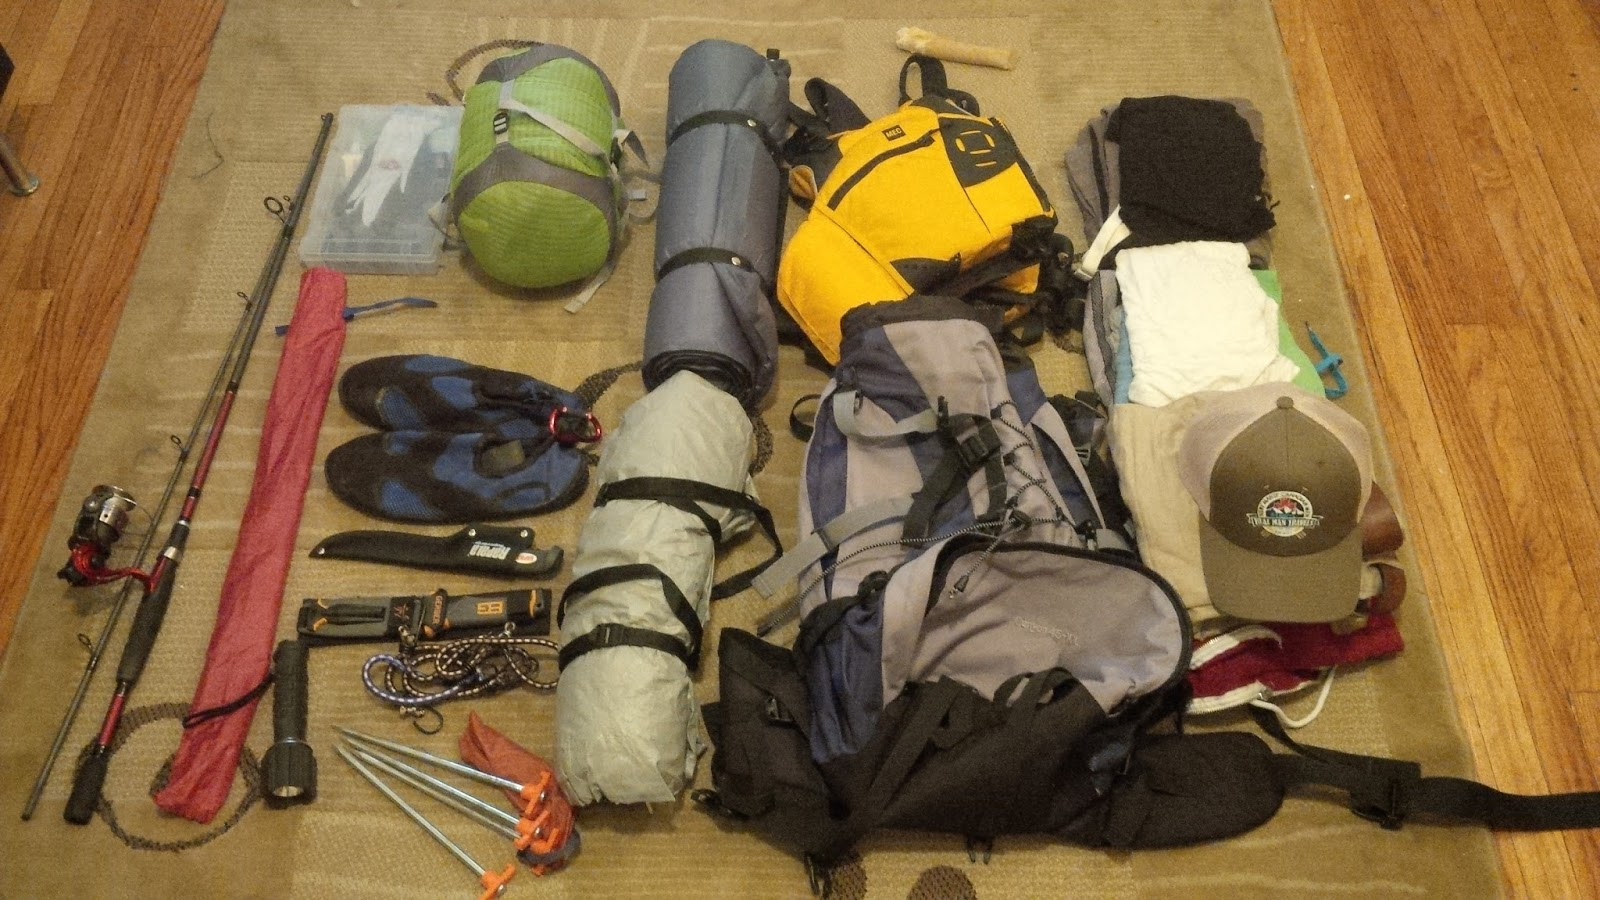 All needed camping gear